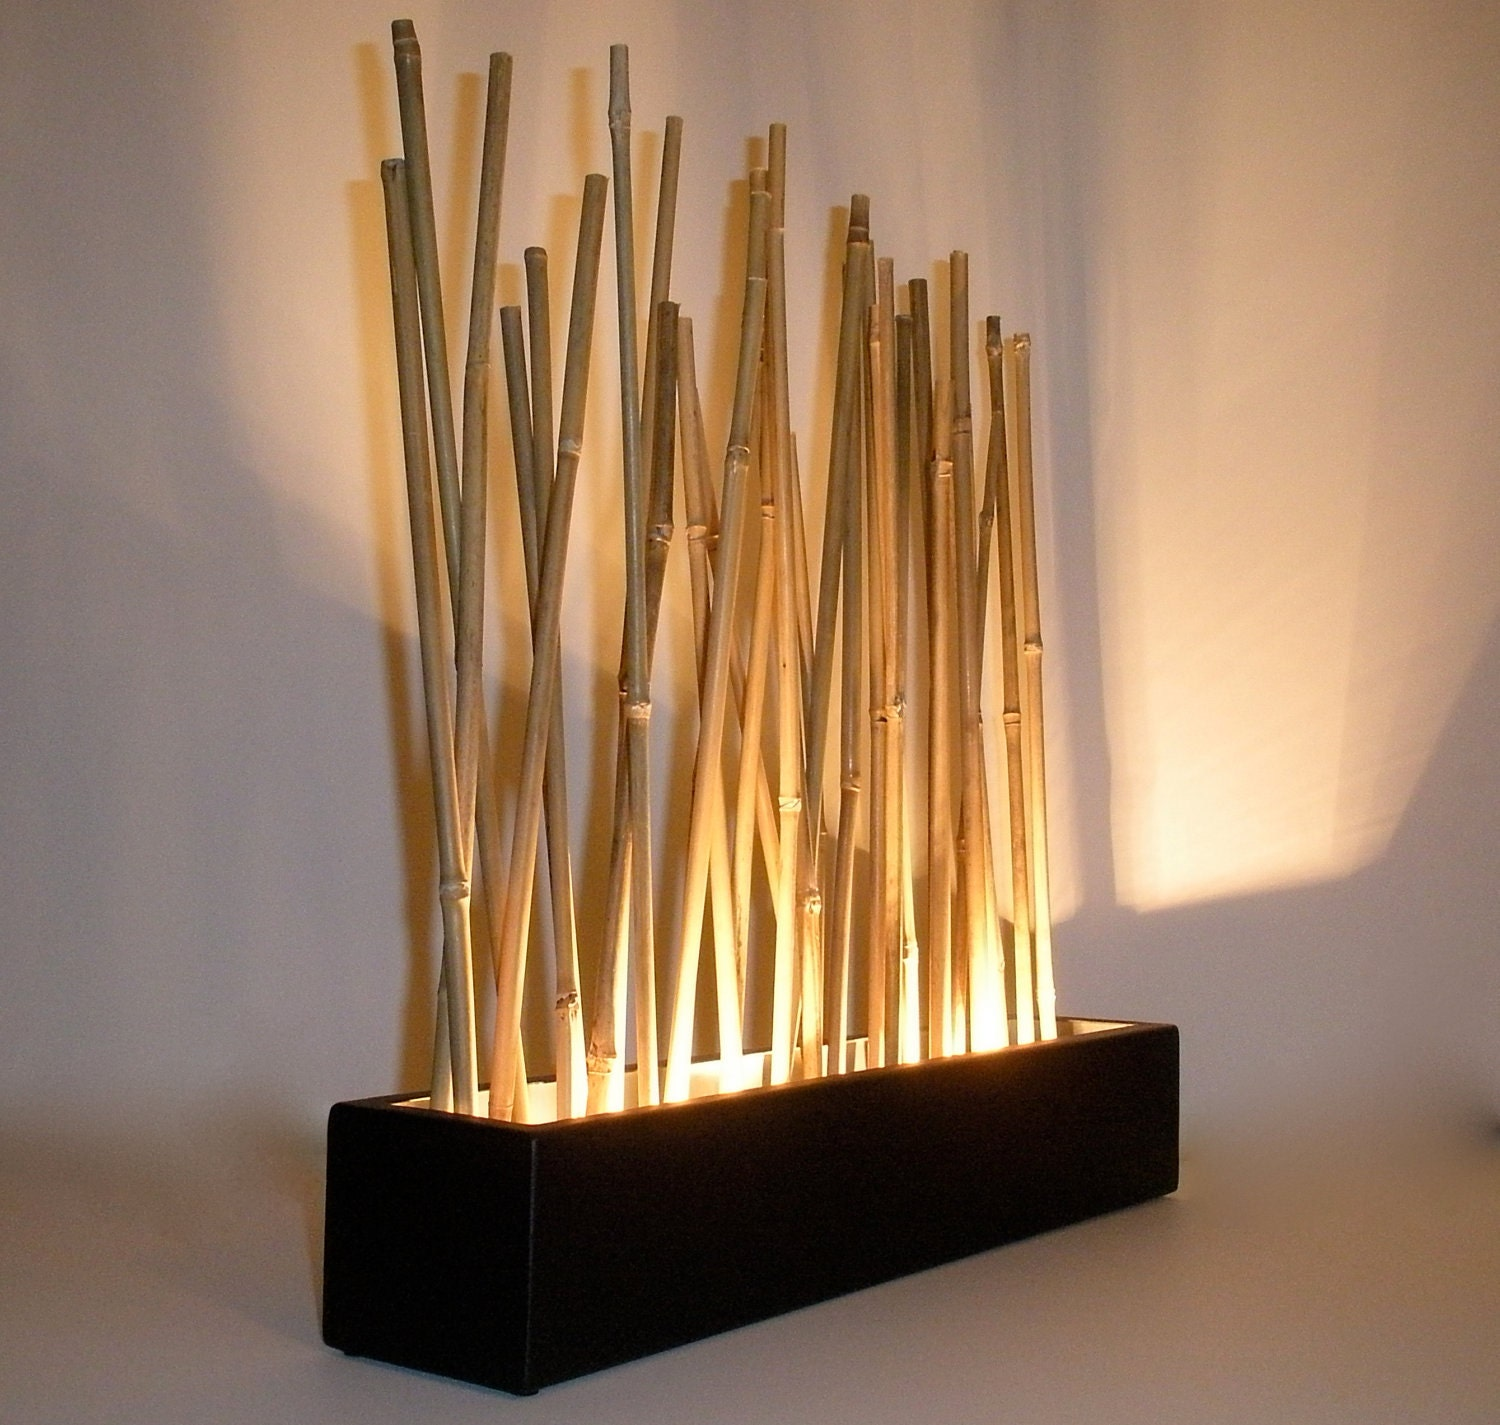 Decorative Wall Lights For Home : Bamboo mood lamp Modern Japanese style tabletop LED accent